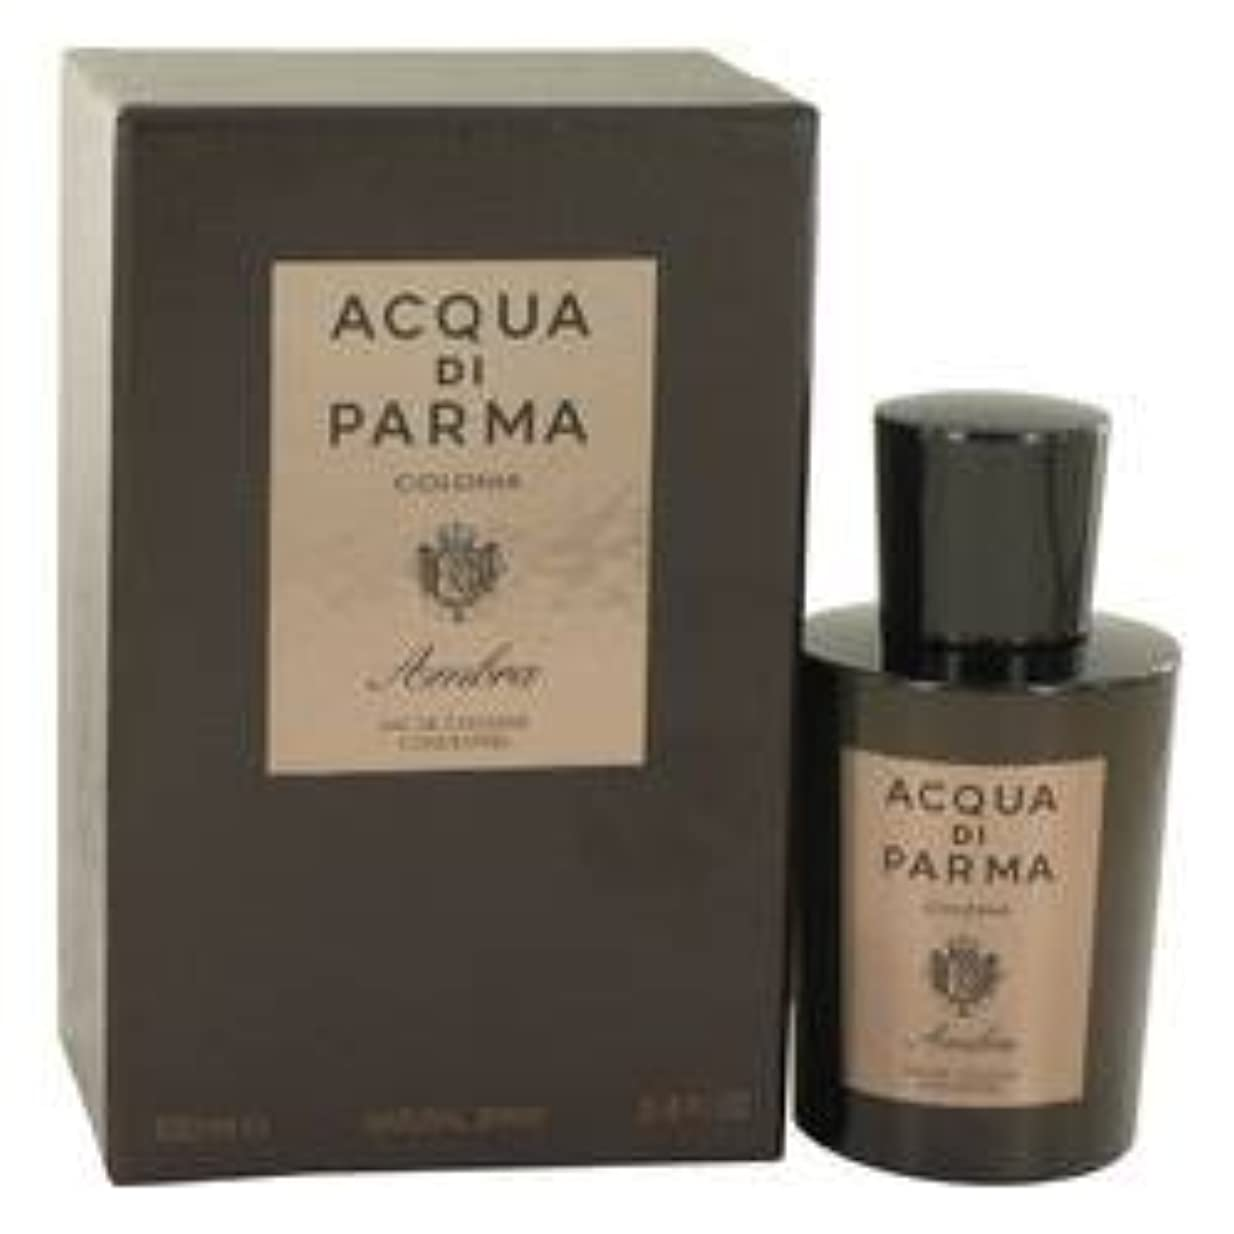 石油アジア共役Acqua Di Parma Colonia Ambra Eau De Cologne Concentrate Spray By Acqua Di Parma